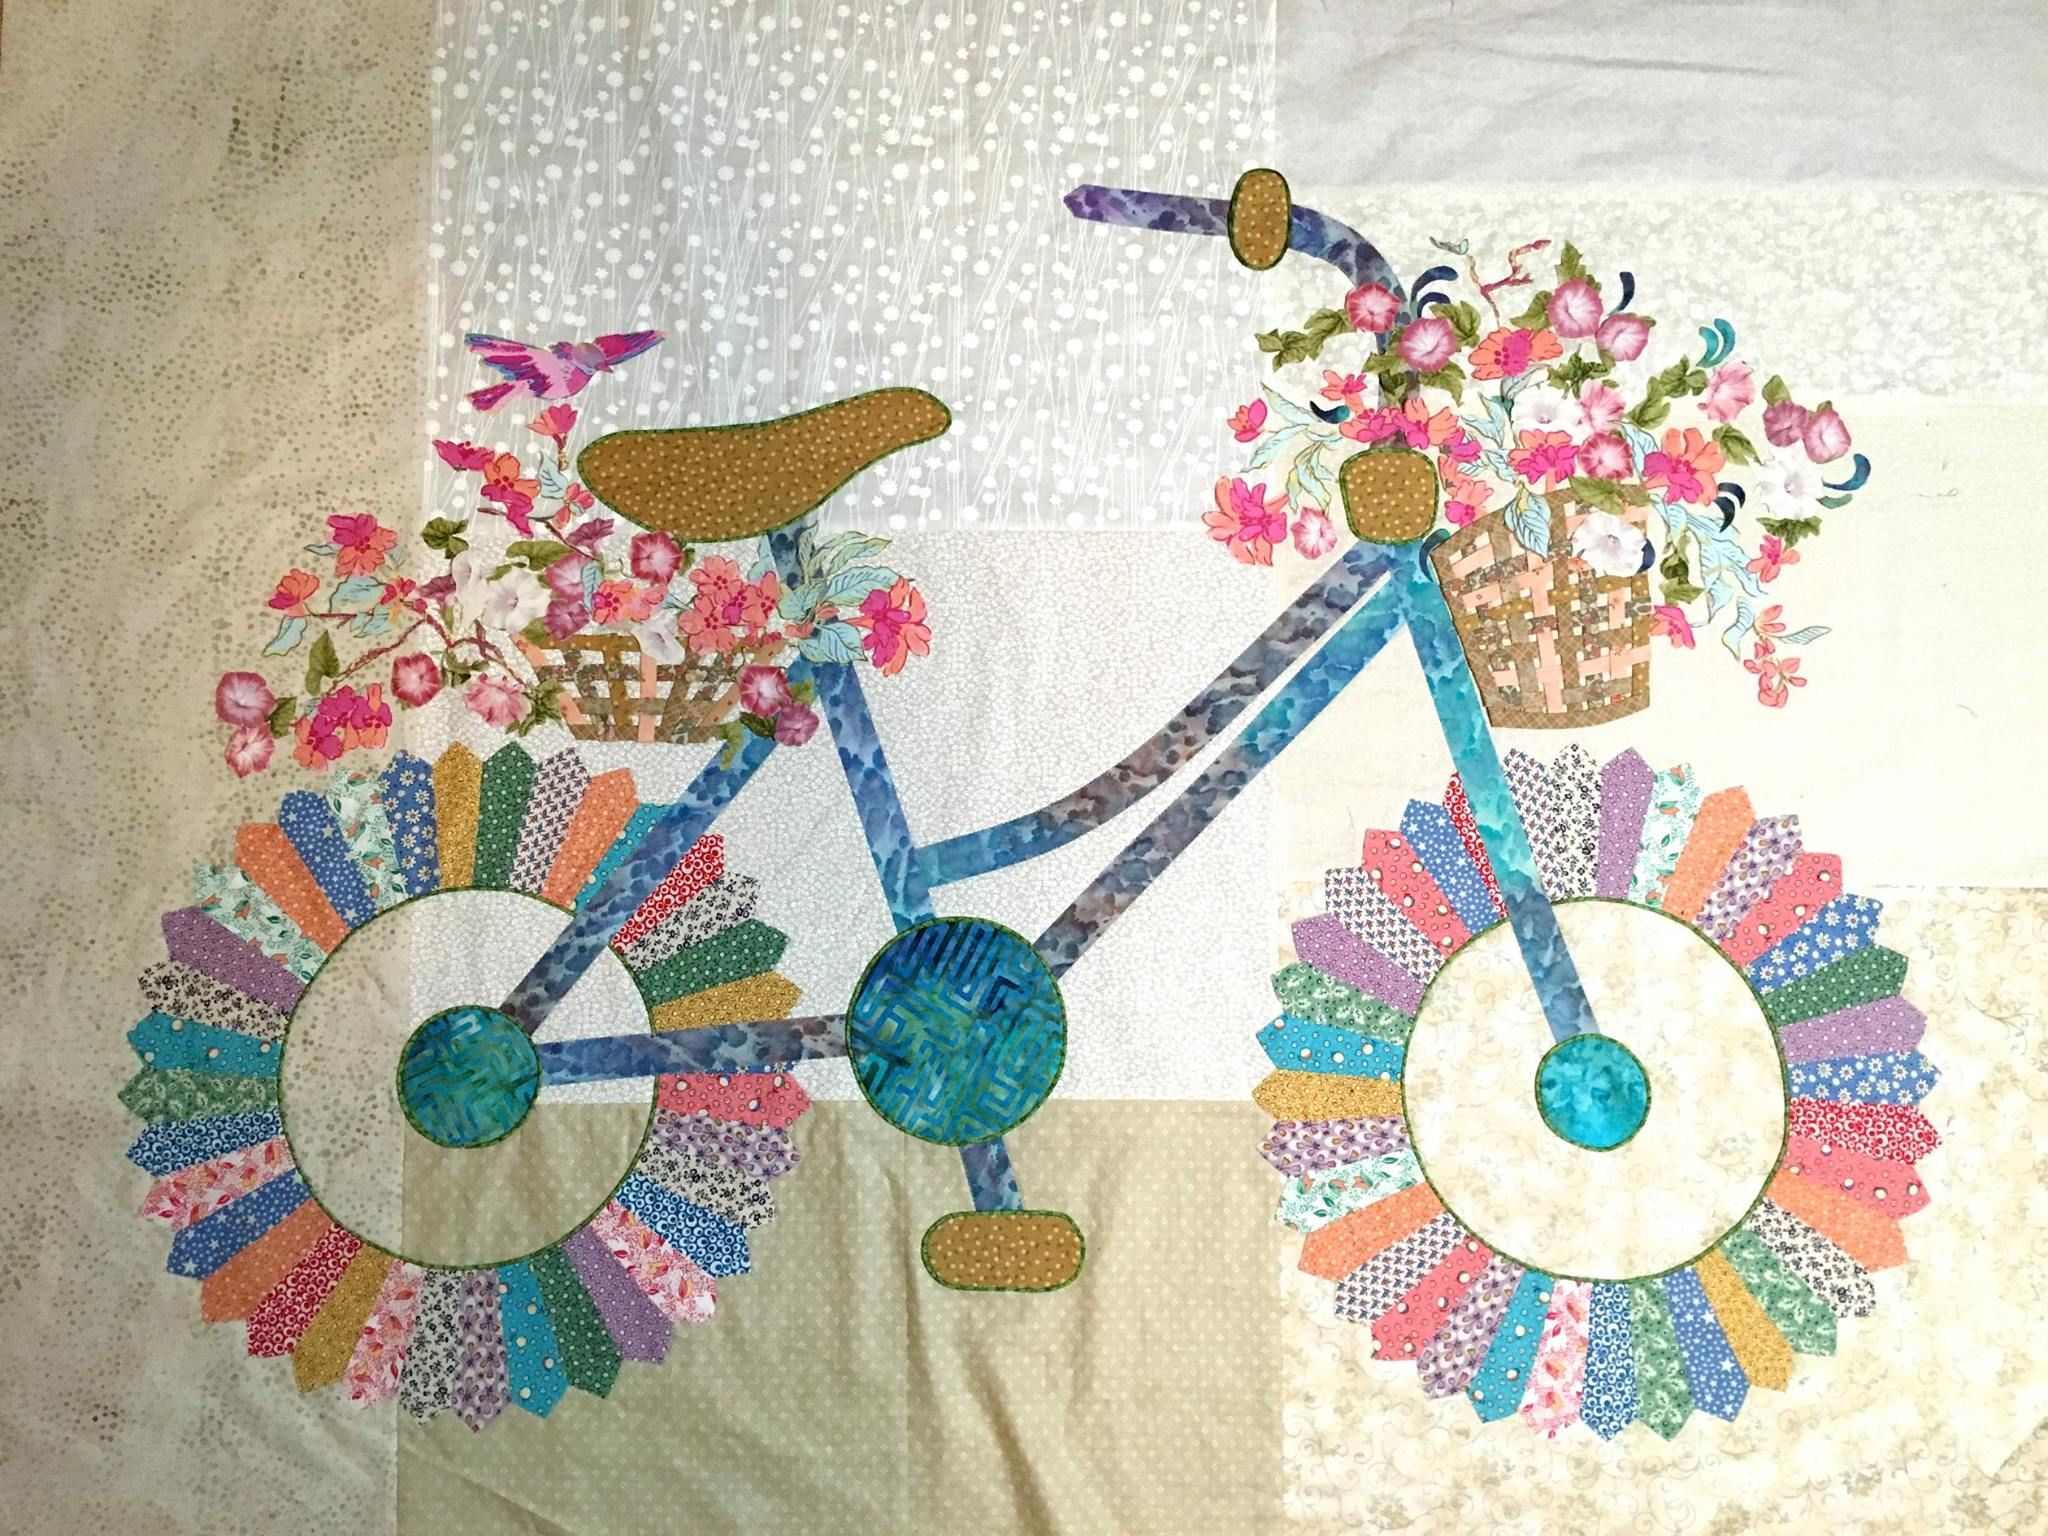 Quilt-Inspiration! Bicycle by Sally Manke, Fiber Artist. Perhaps a tutorial someday?